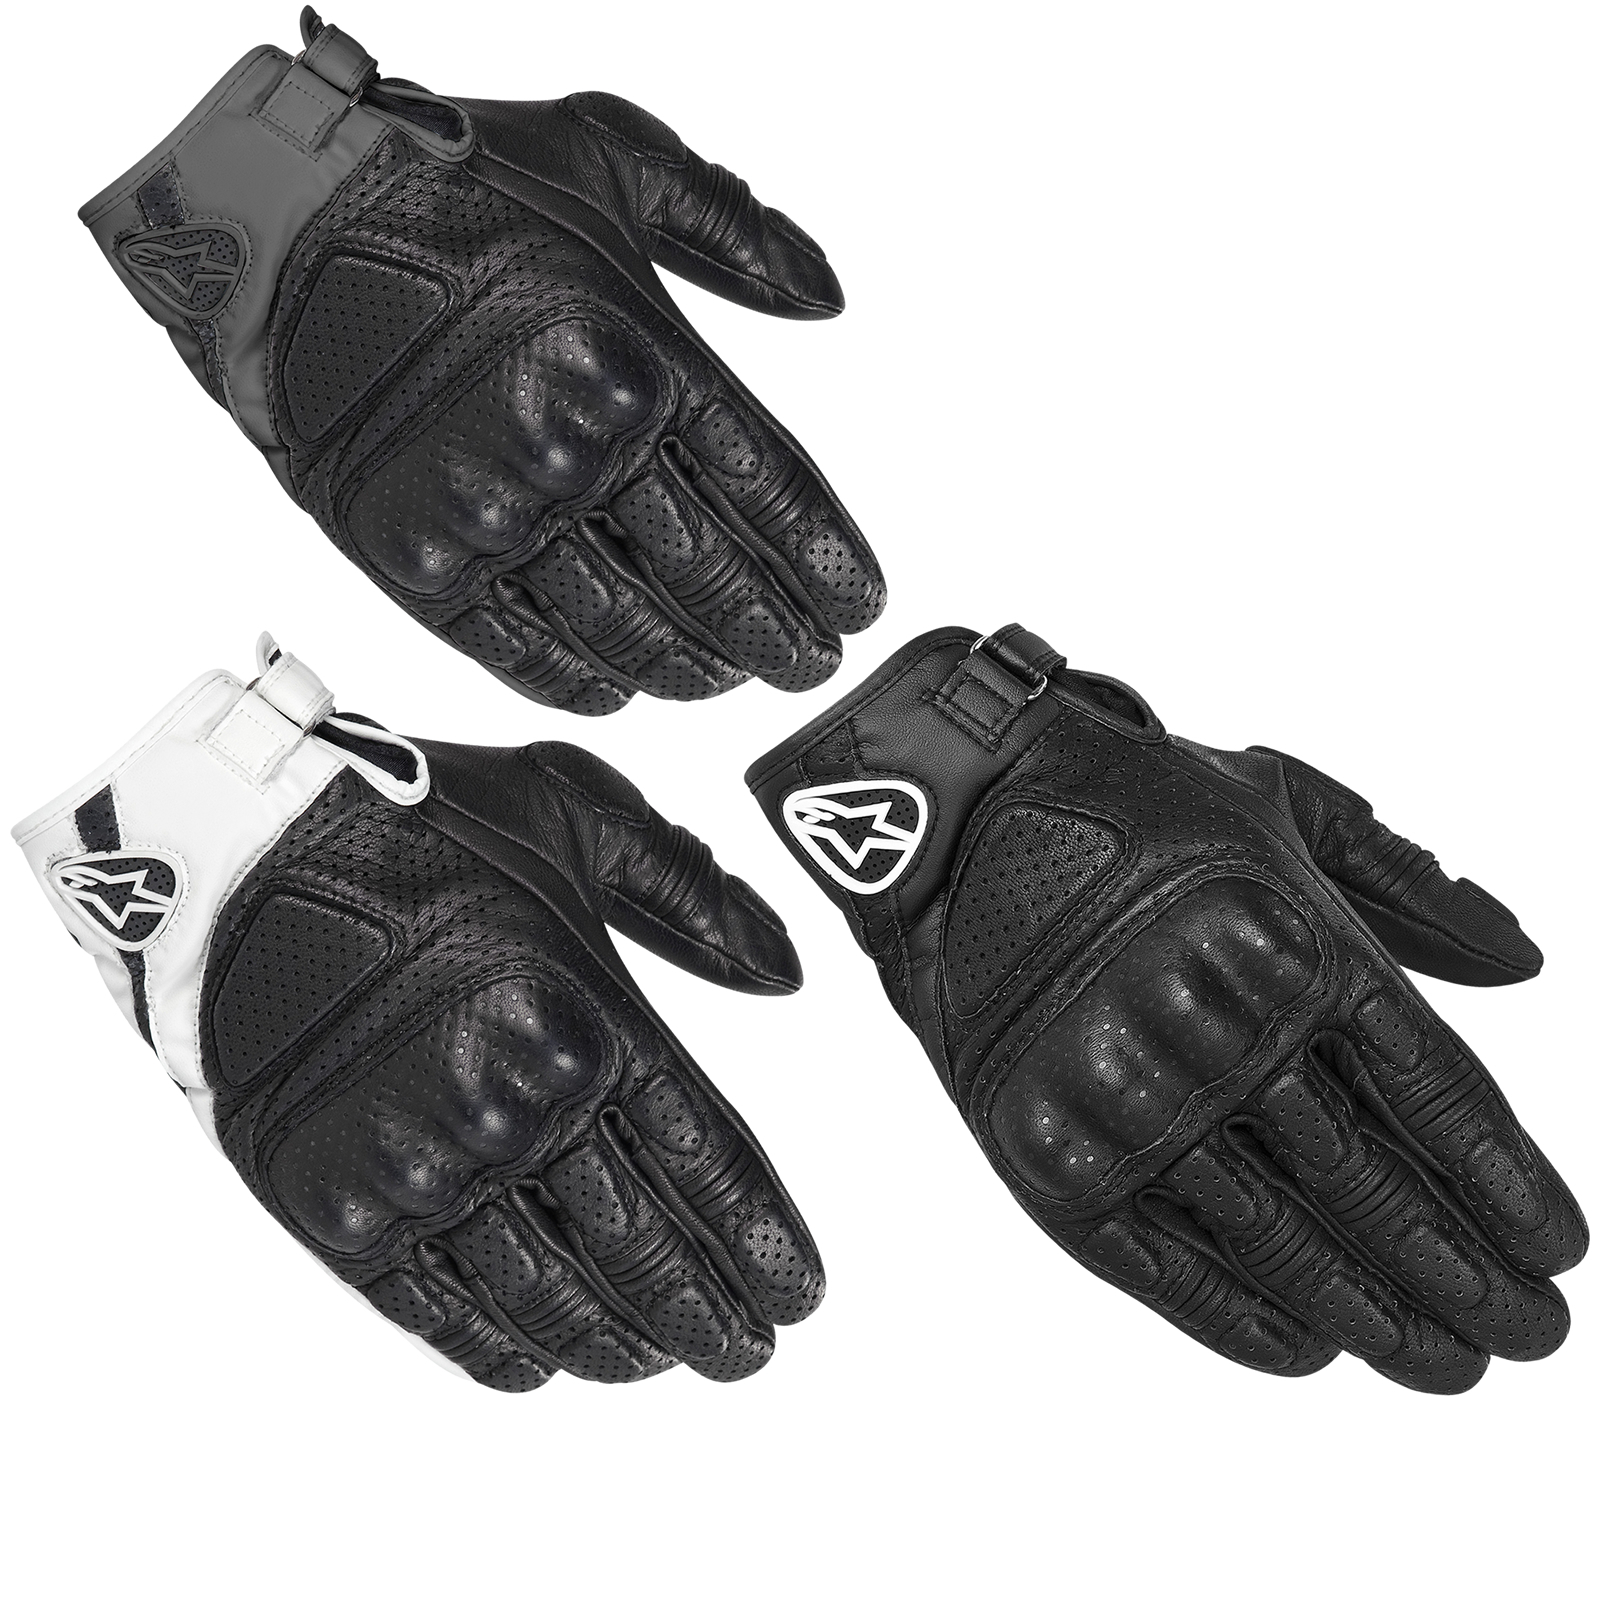 Motorcycle gloves for summer - Image Is Loading Alpinestars Mustang Short Vented Summer Motorcycle Hard Knuckle